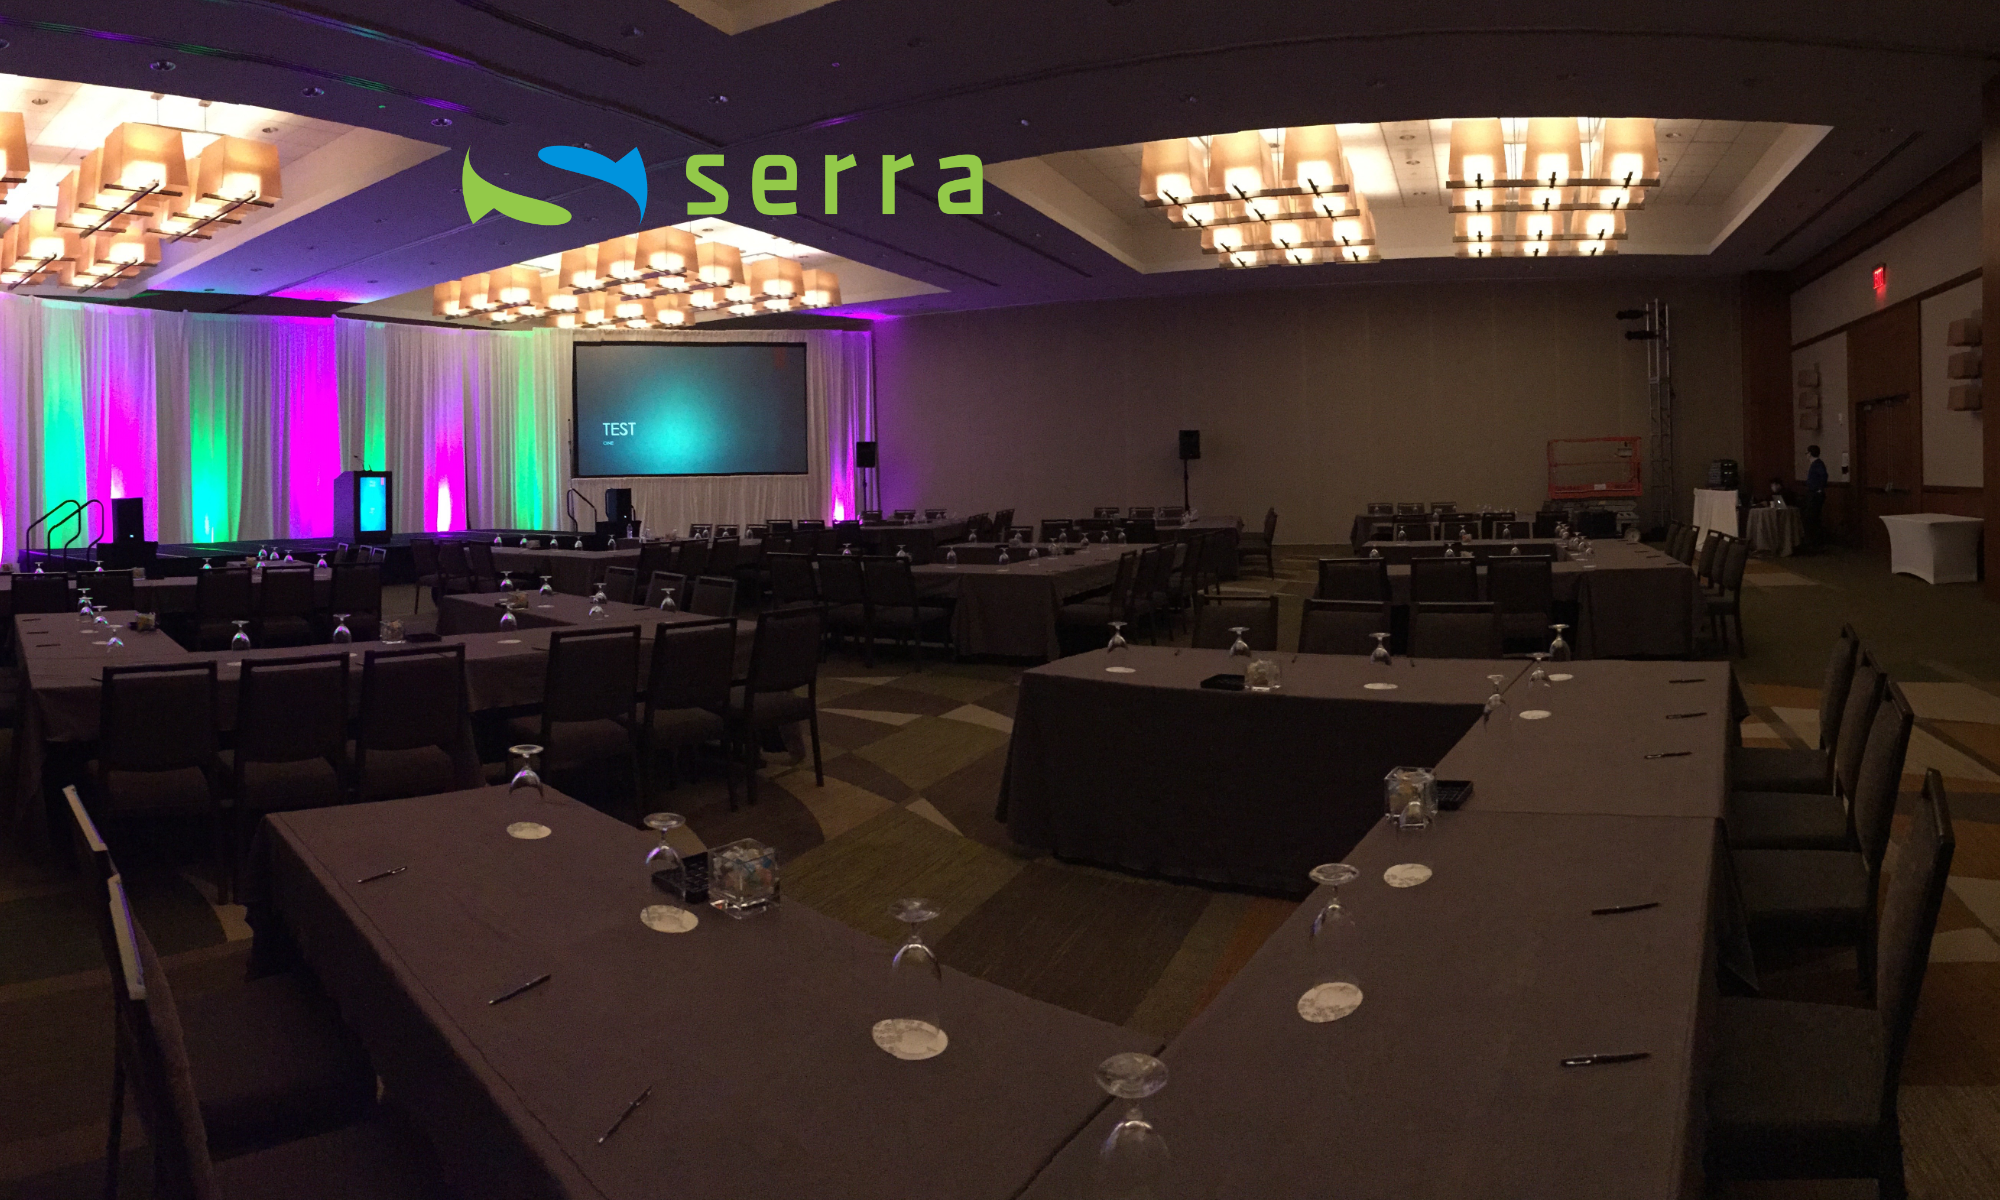 The Serra Group, Inc.